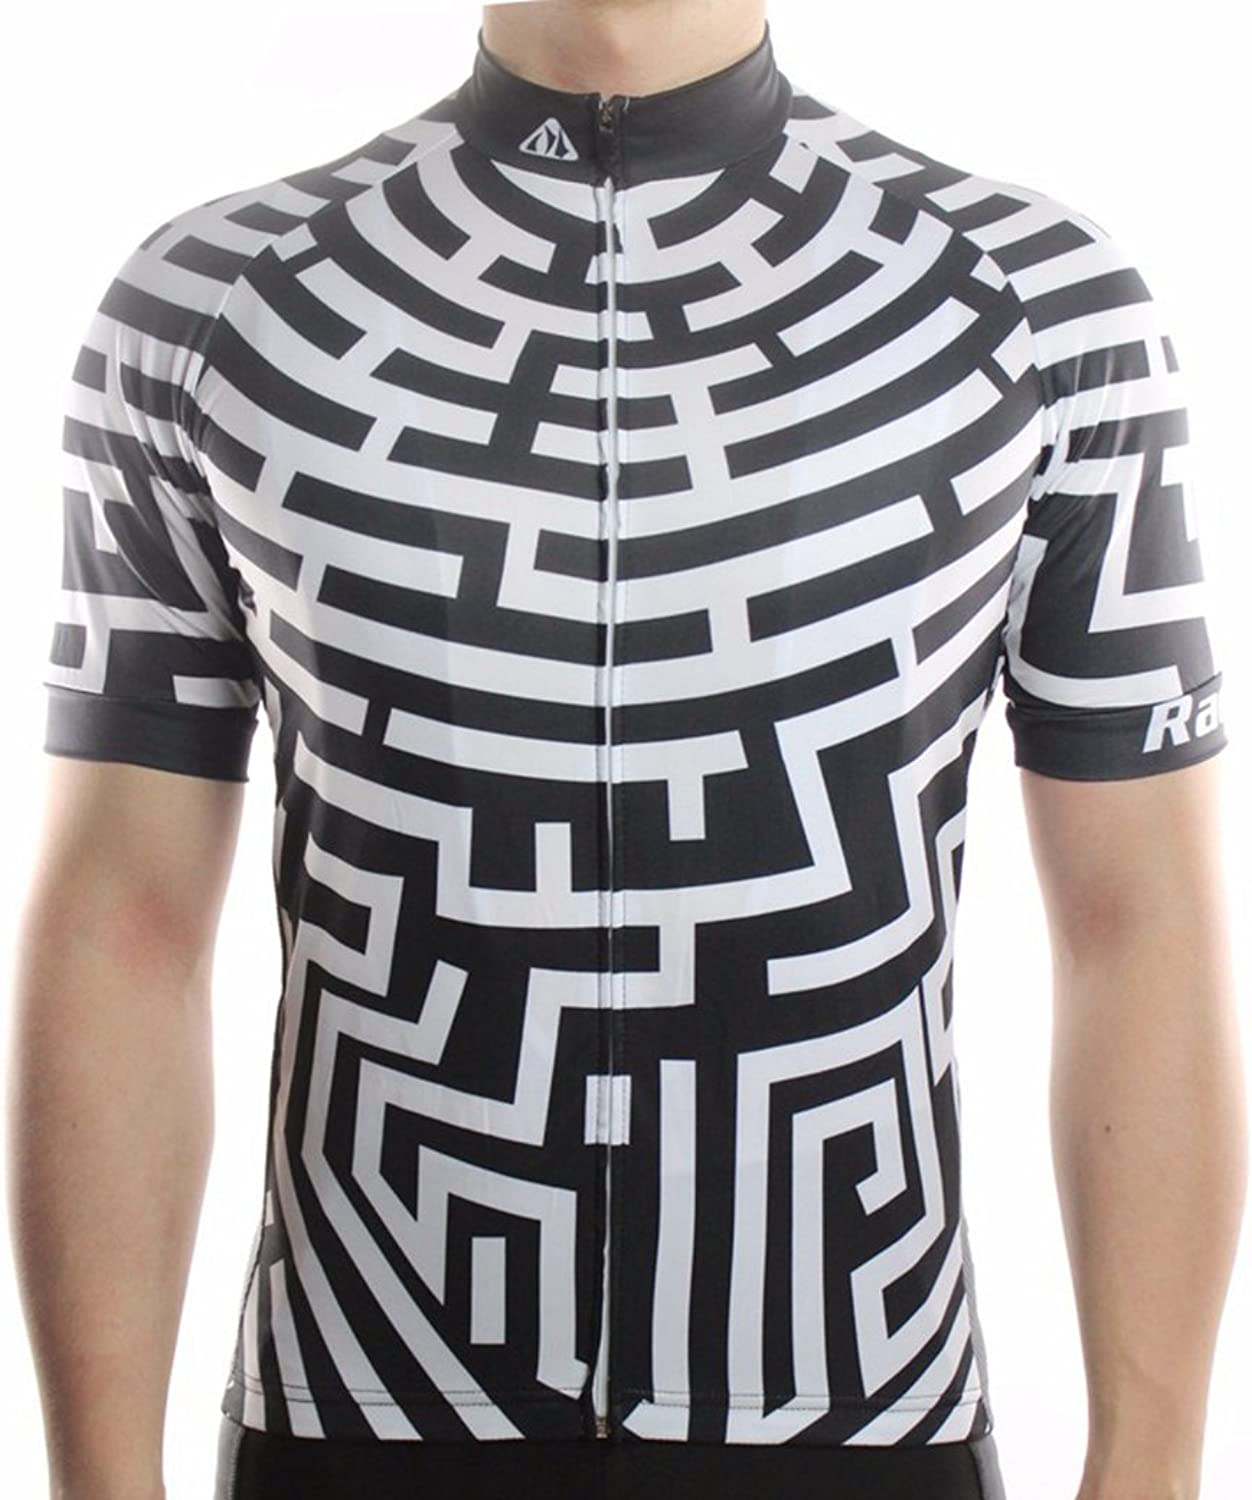 Bike Cycling Jersey 2019 Breathable Summer MTB Short Sleeve Sportswear Bicycle Clothing Top